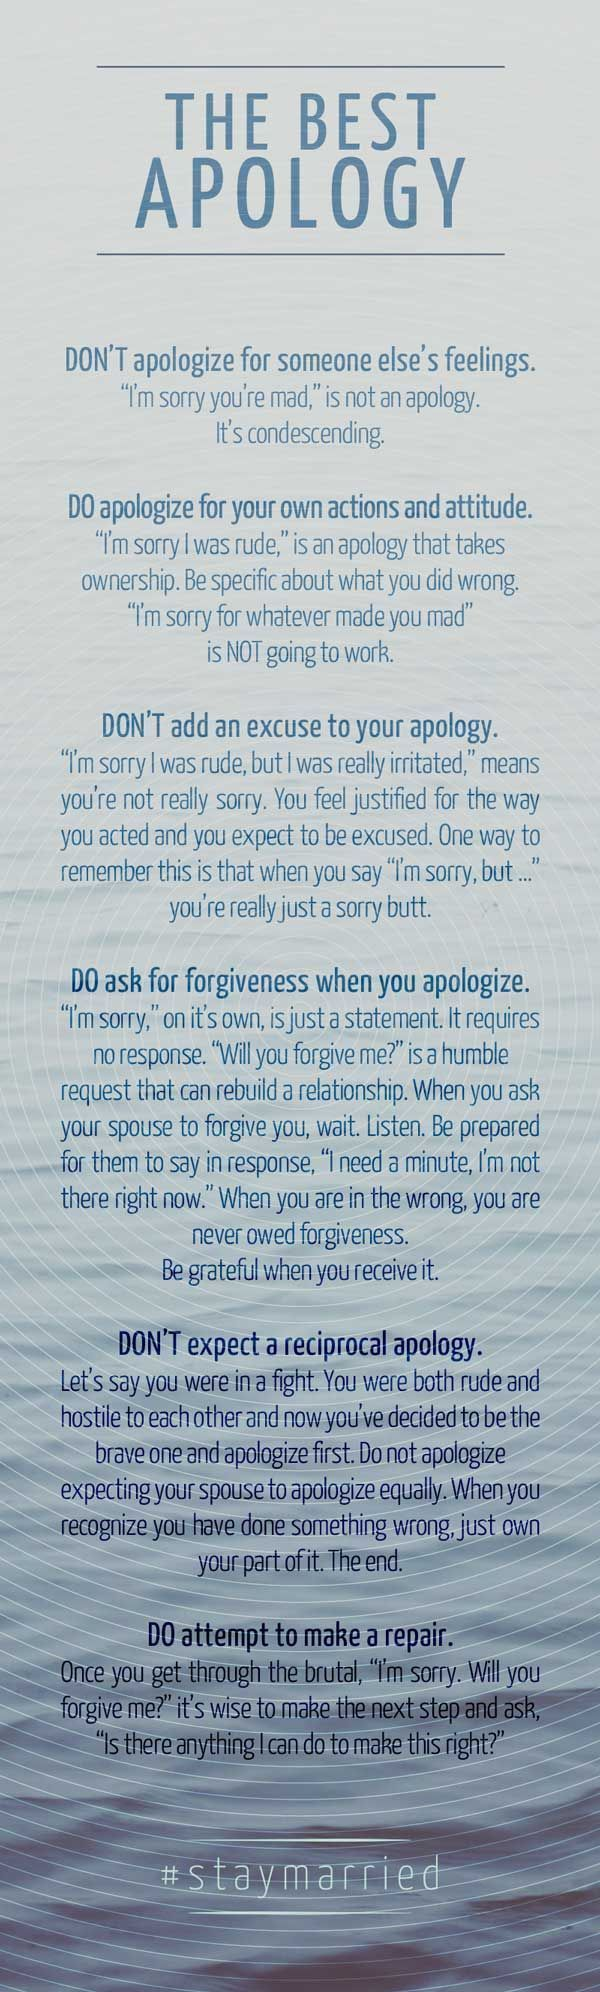 Importance of apologizing in marriage